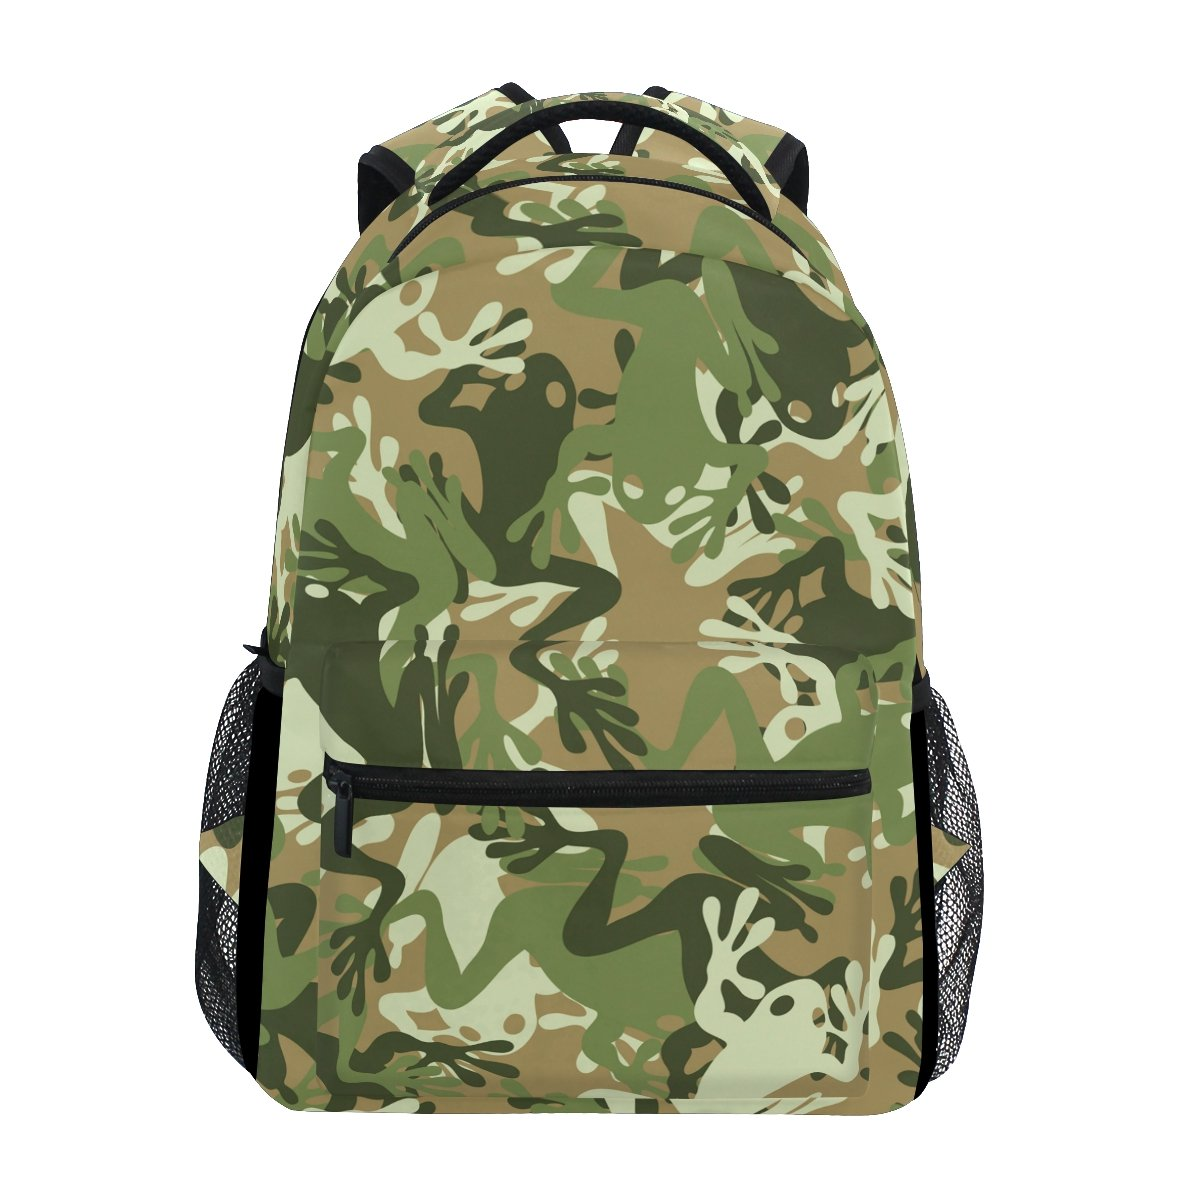 WWE John Cena Casual Laptop Backpack Cosplay Wrestling Schoolbag Camouflage Boys' Accessories Clothes, Shoes & Accessories